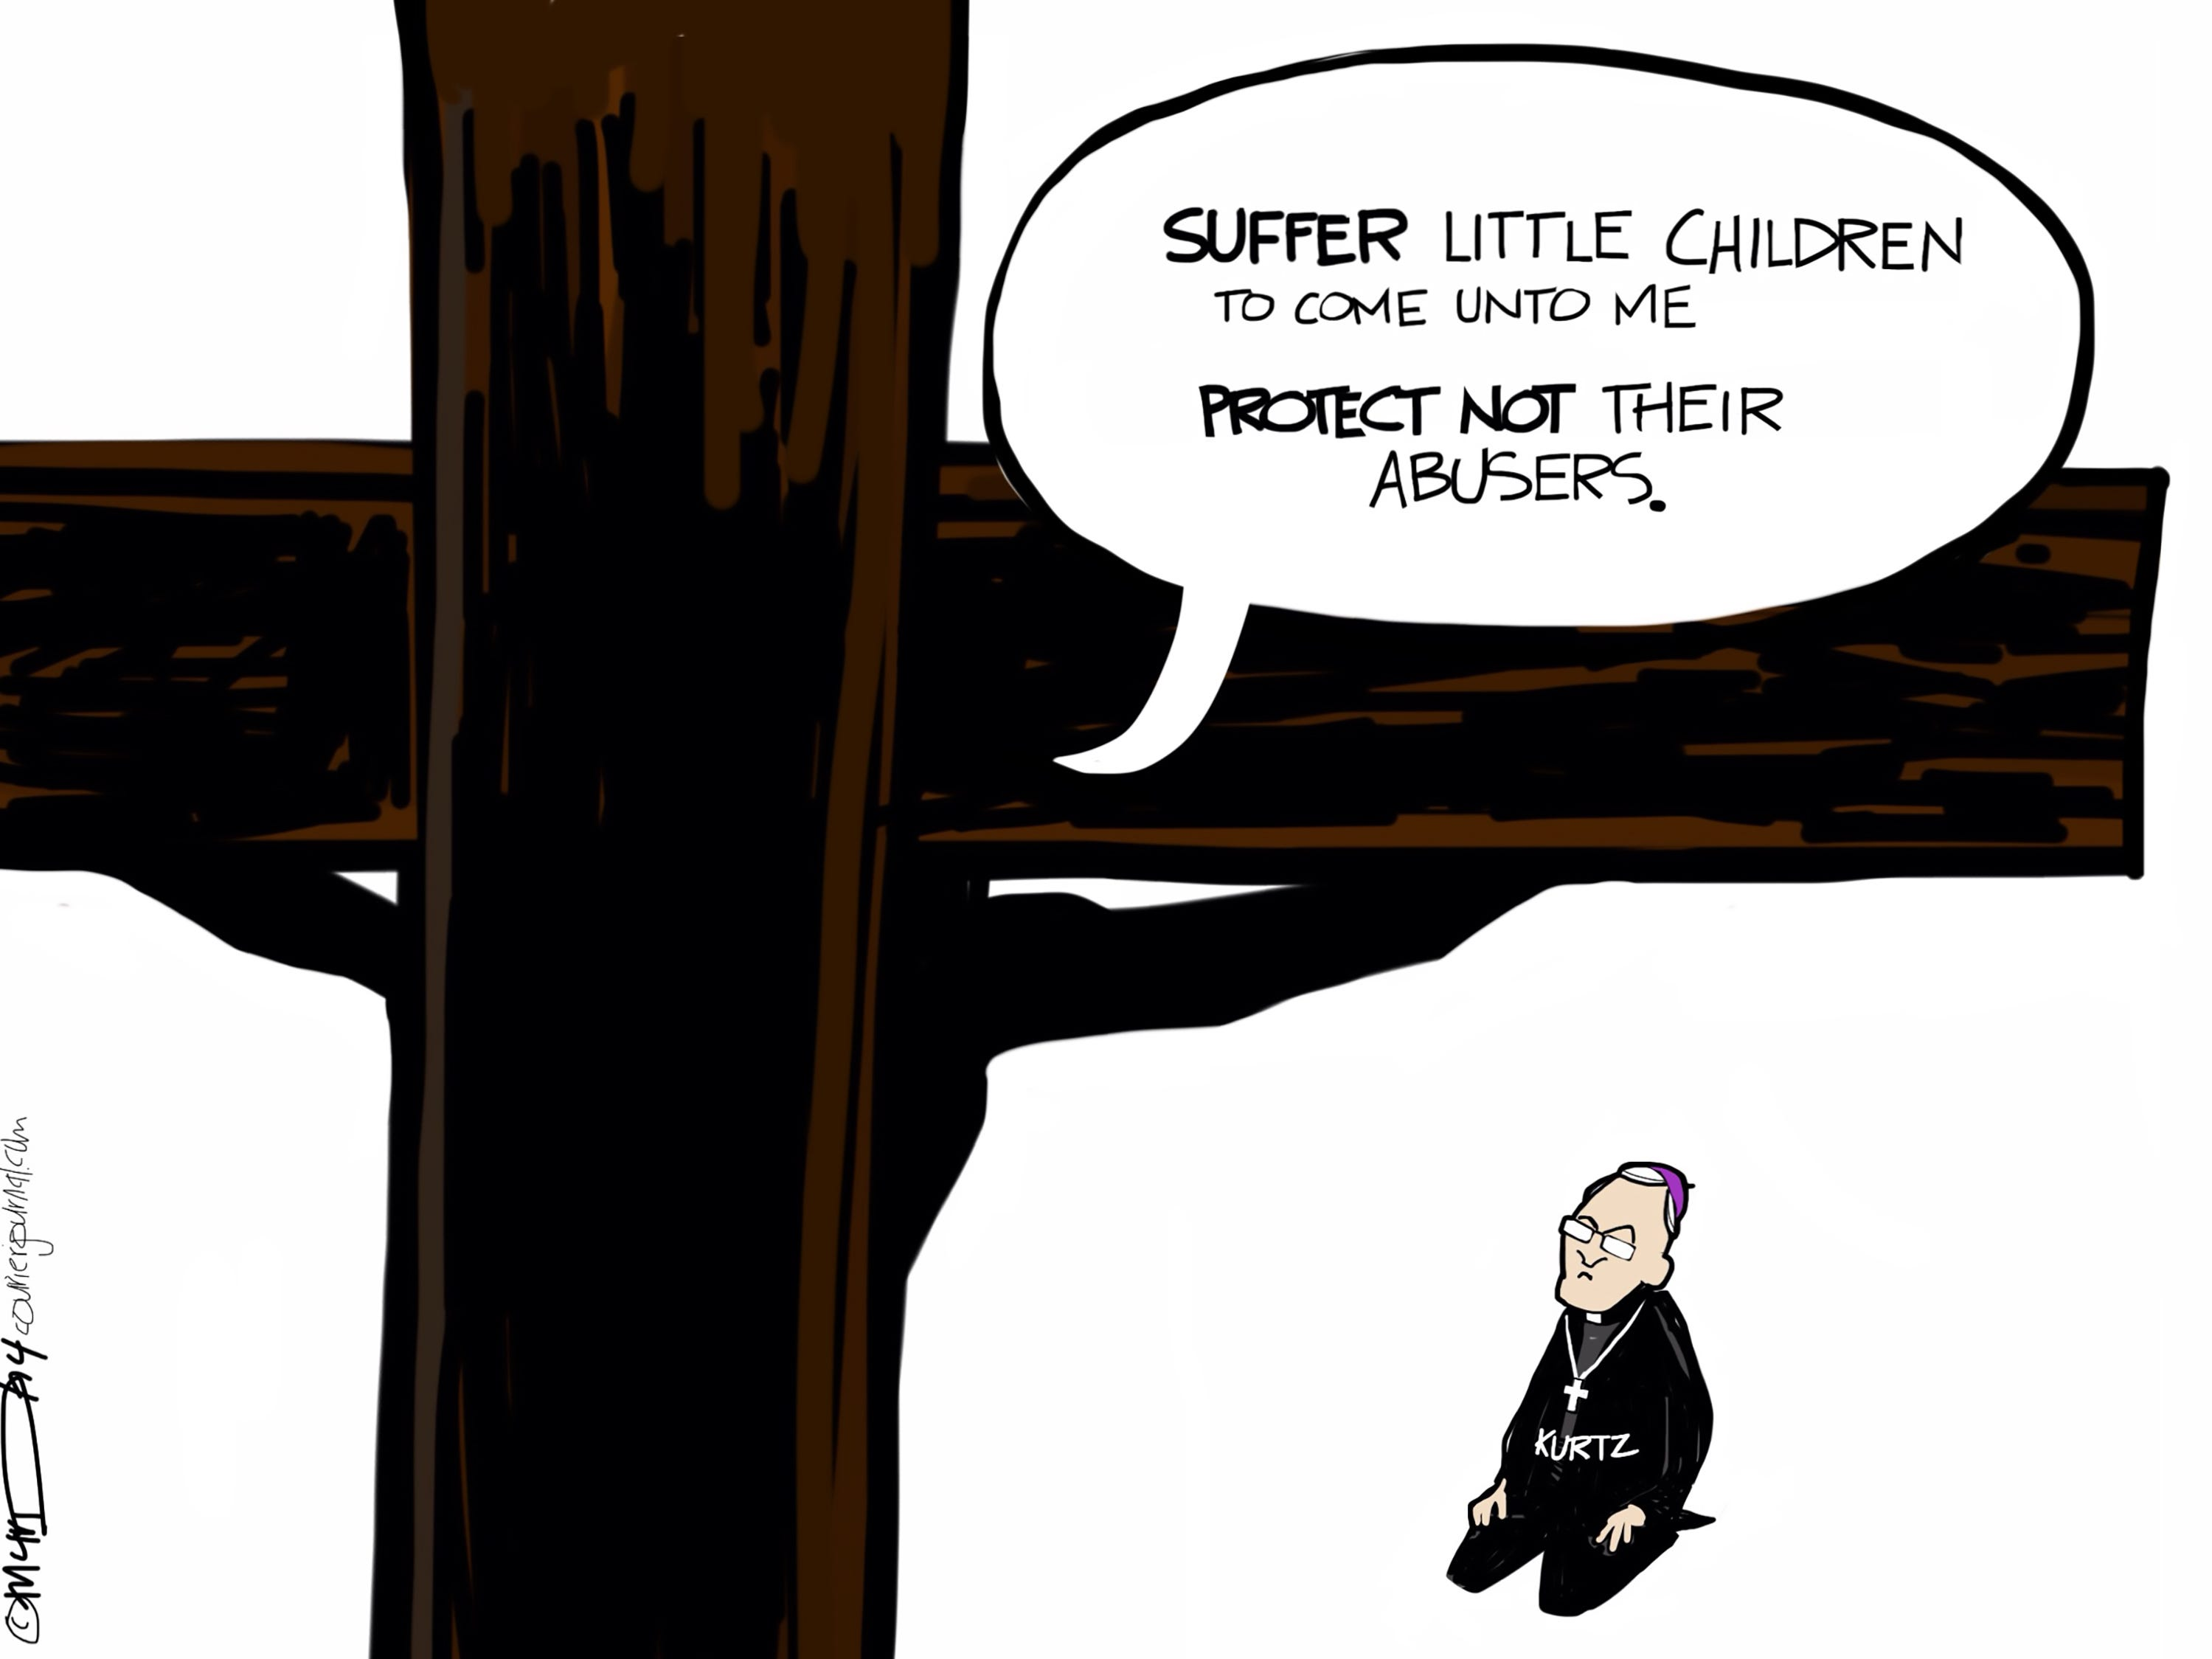 Archbishop Joseph Kurtz has been head of the Roman Catholic Archdiocese of Louisville, Kentucky since 2007. The cartoonist's homepage, courier-journal.com/opinion